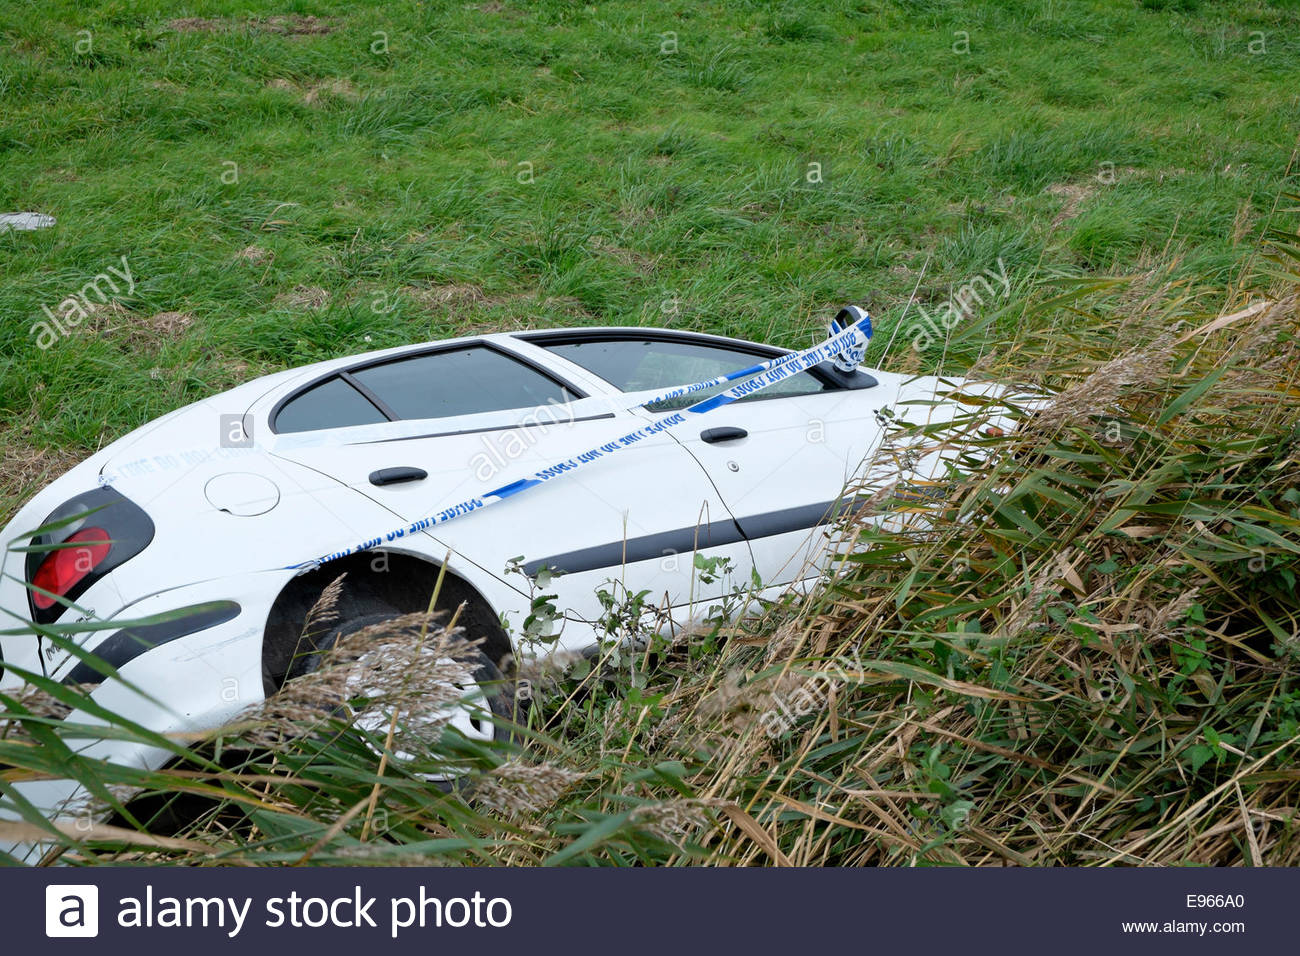 Car careered off road and slid down grassy bank the car has police aware  tape attached to it